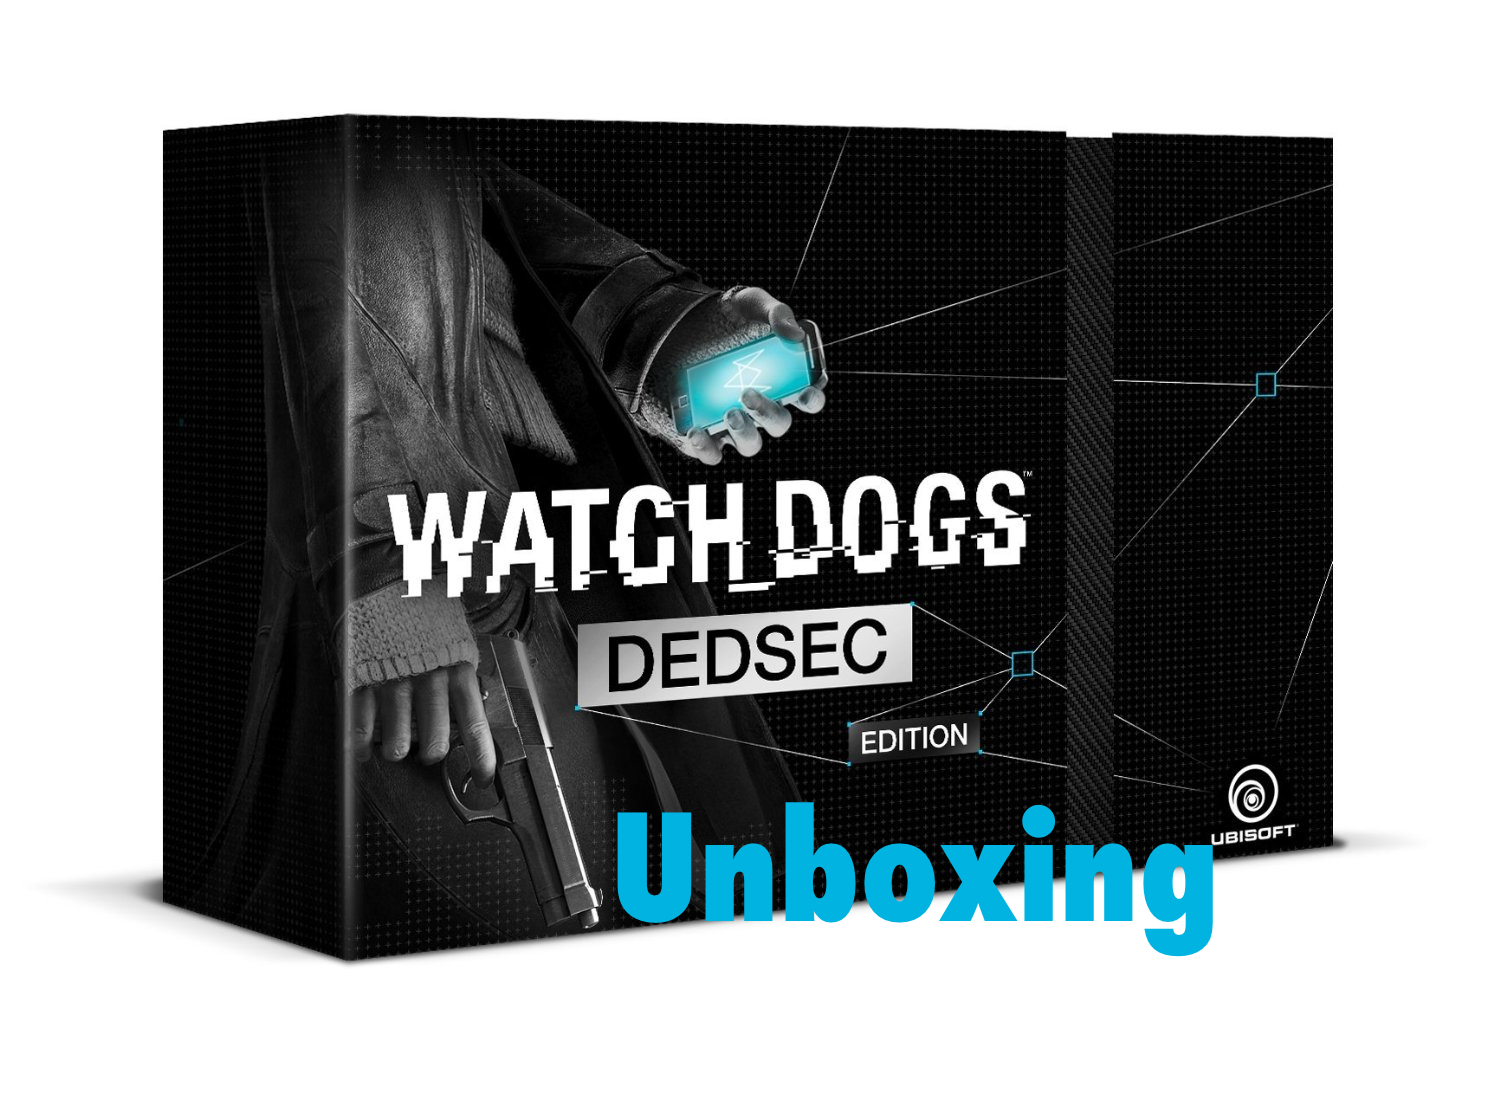 Watch Dogs DEDSEC ed